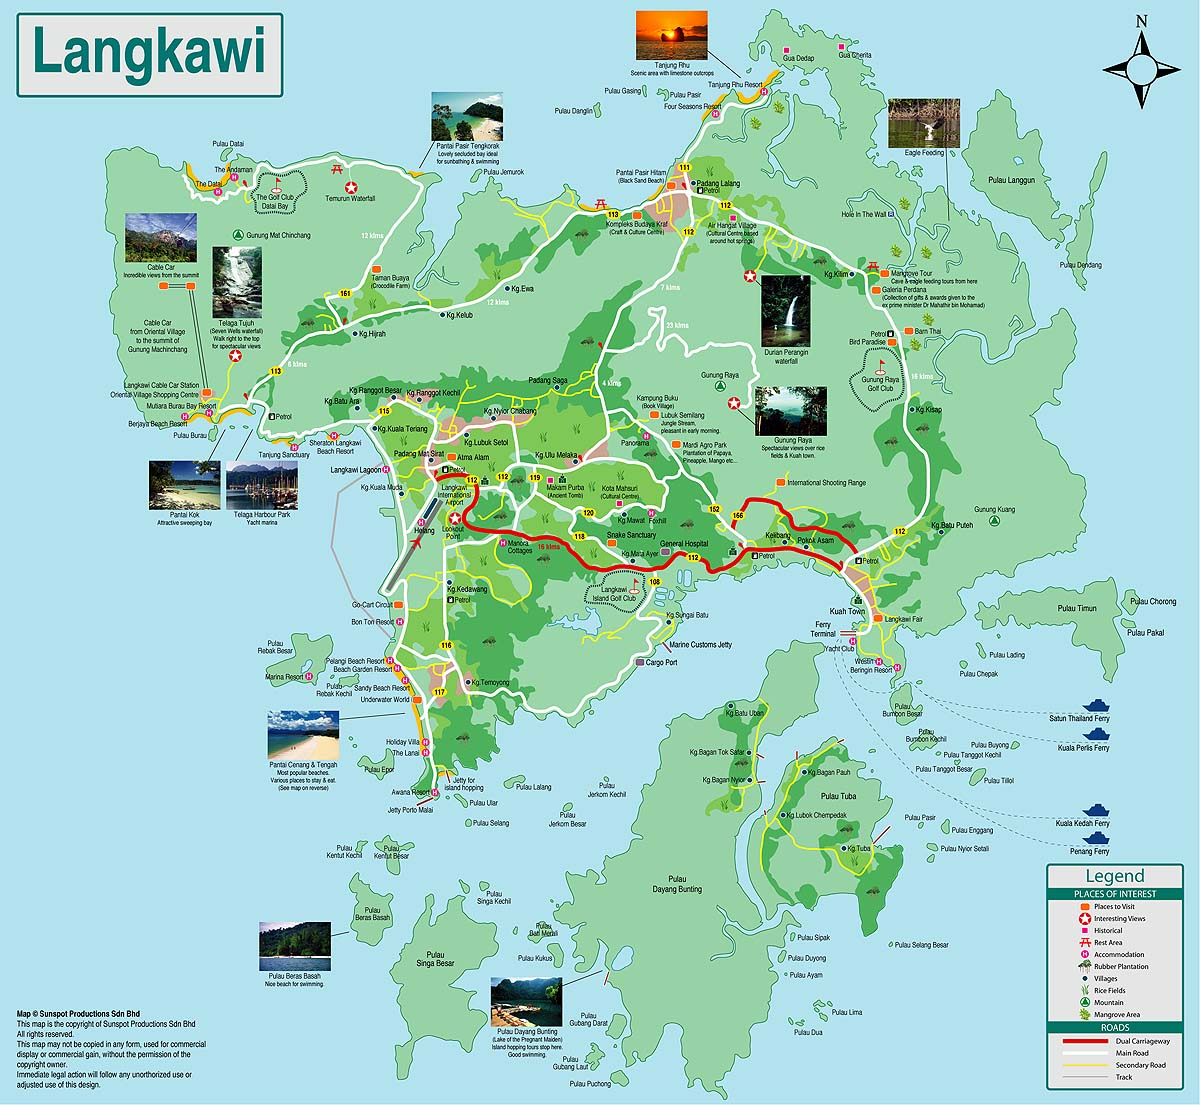 Langkawi Island: .going Everywhere For Catching Up The Journey.: Langkawi's Map